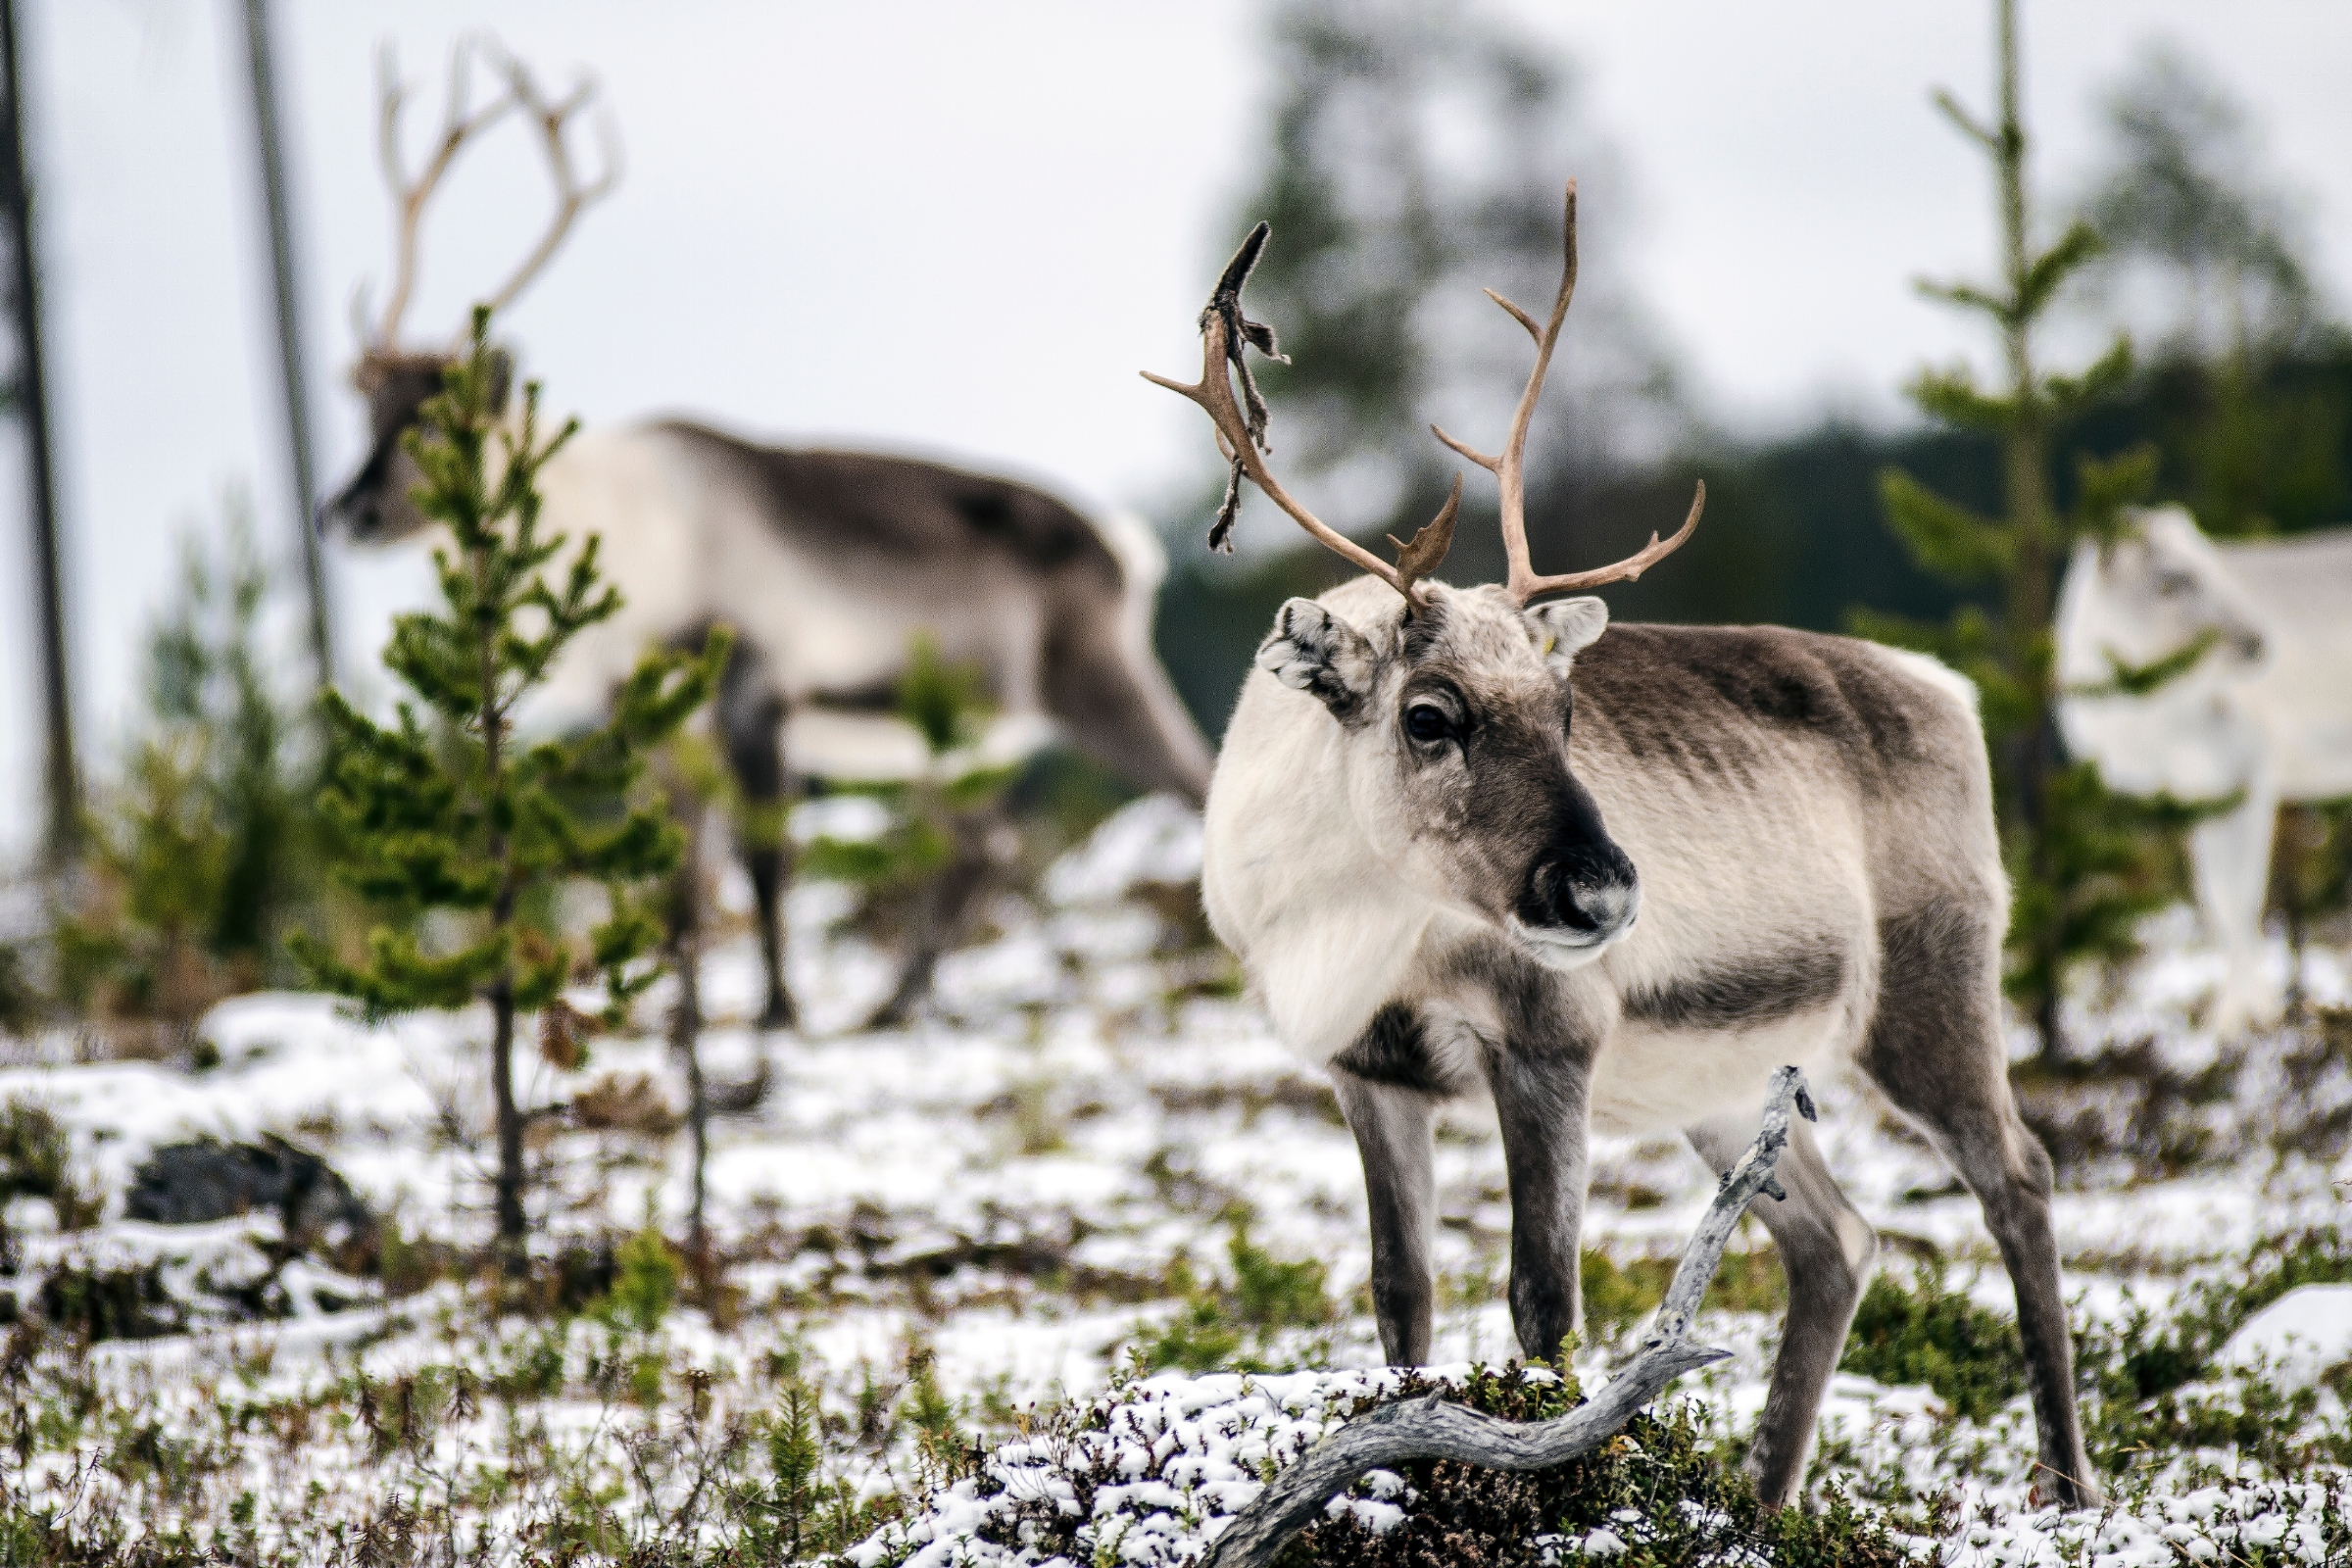 Reindeer of a Sami herd in Finnish Lapland. Image: David Williams - www.hybriddave.com/Getty Images